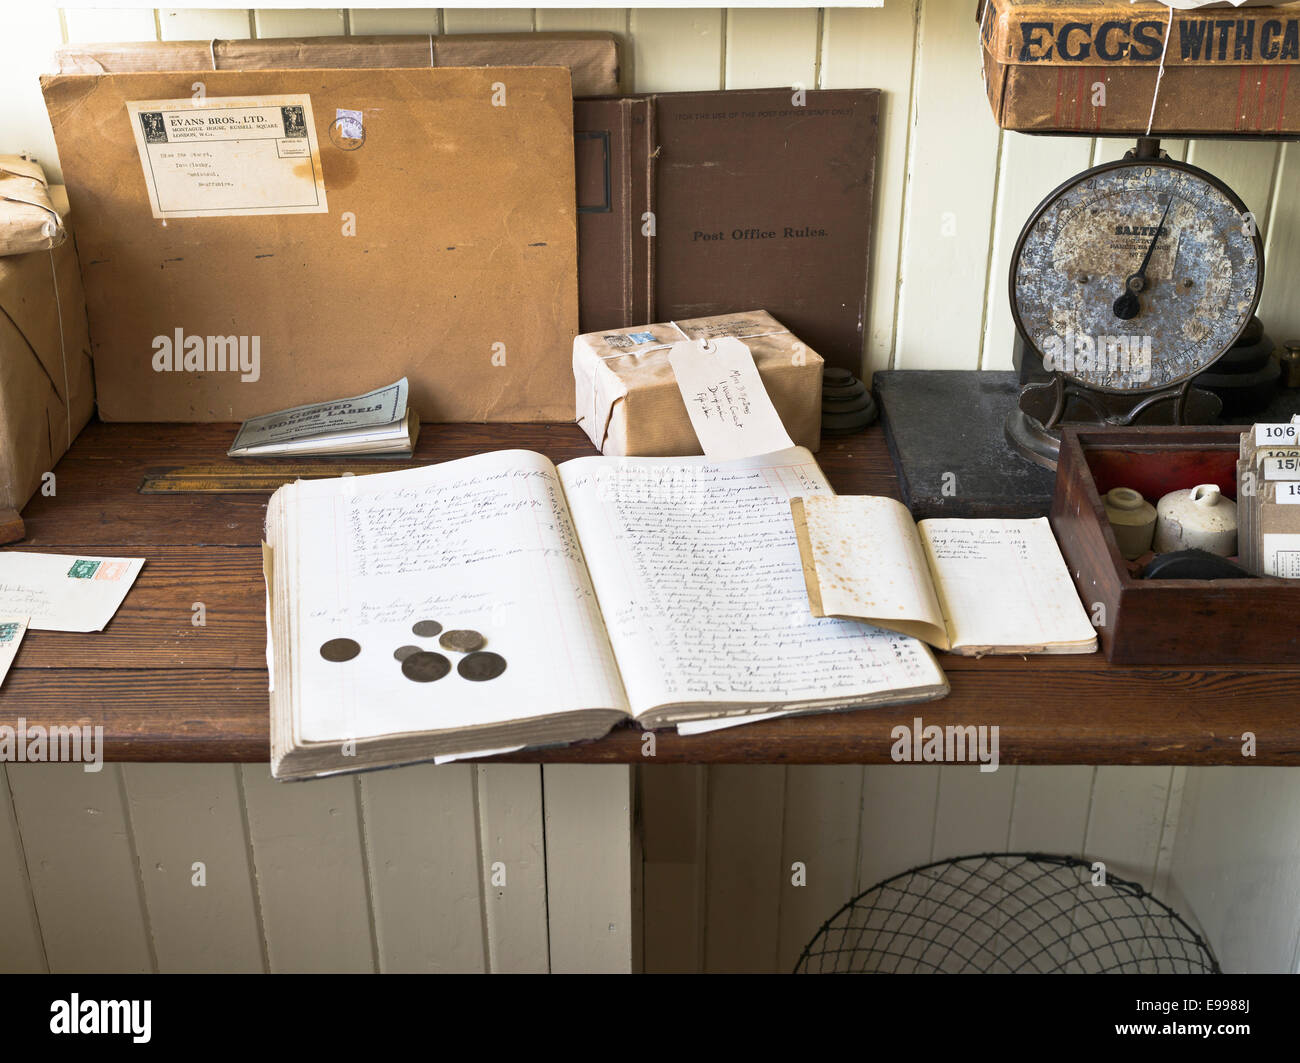 dh Highland Folk Museum NEWTONMORE INVERNESSSHIRE Post Office ledger counter indoor - Stock Image